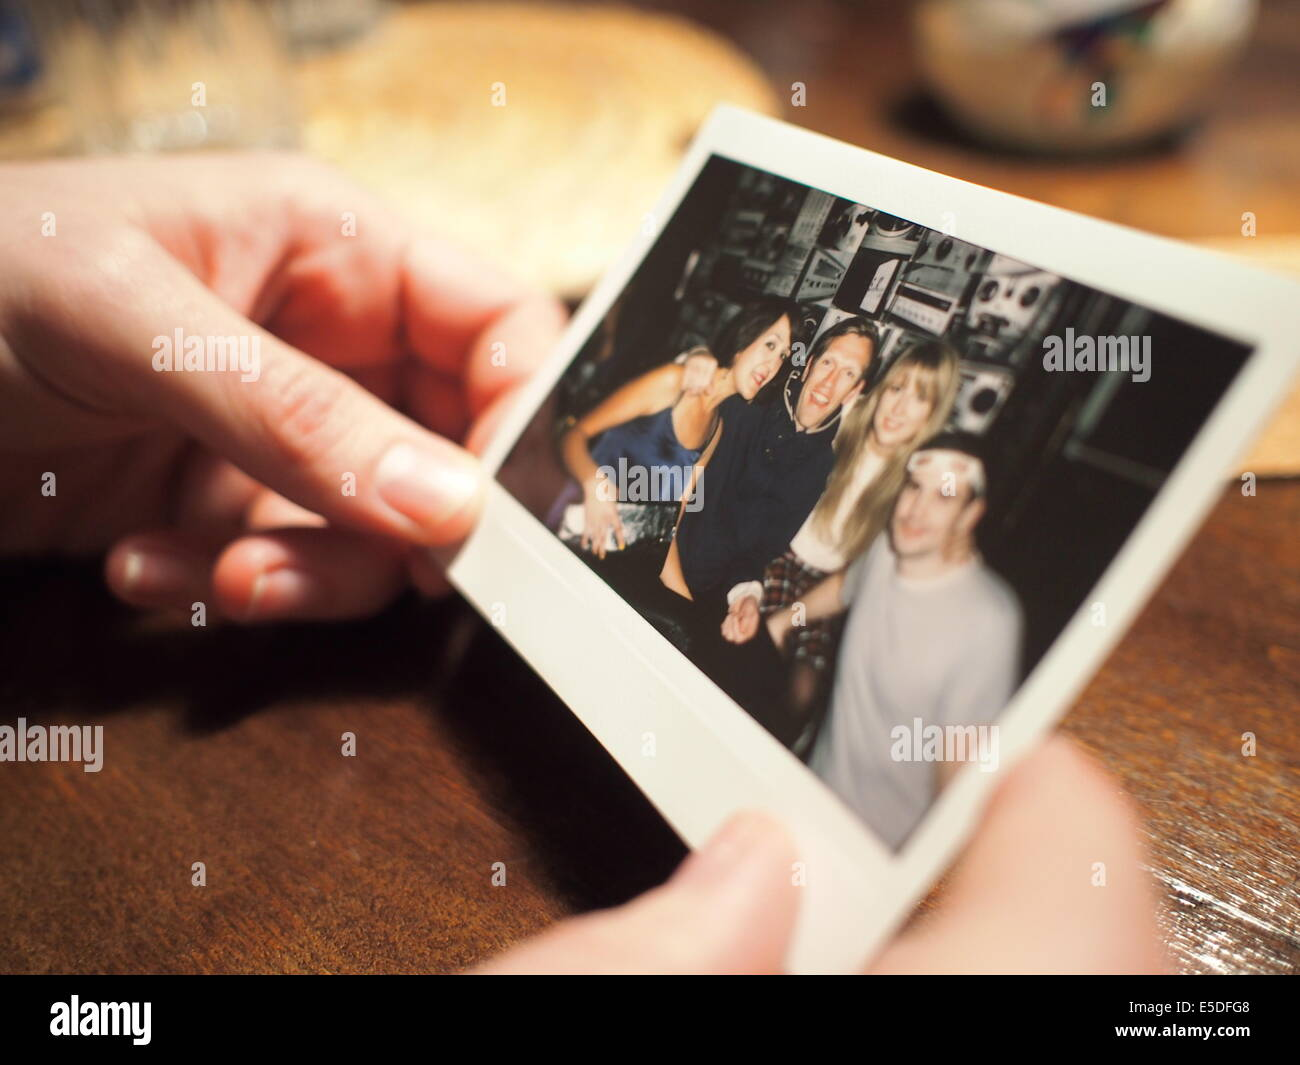 Reminiscing, looking back on special Polaroid moments - Stock Image